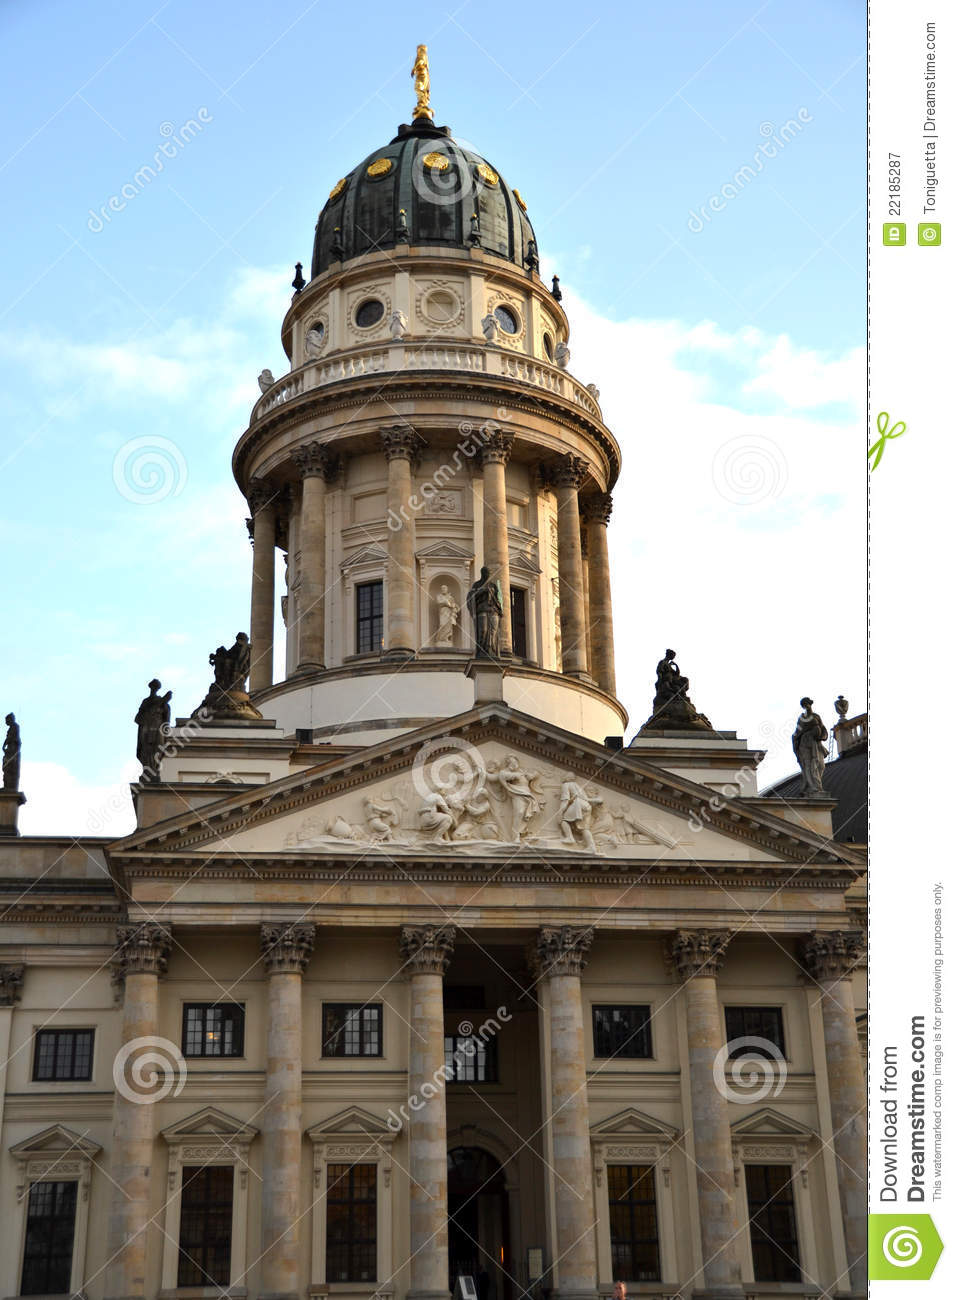 the german cathedral in gendarmenmarkt berlin royalty free stock photography image 22185287. Black Bedroom Furniture Sets. Home Design Ideas